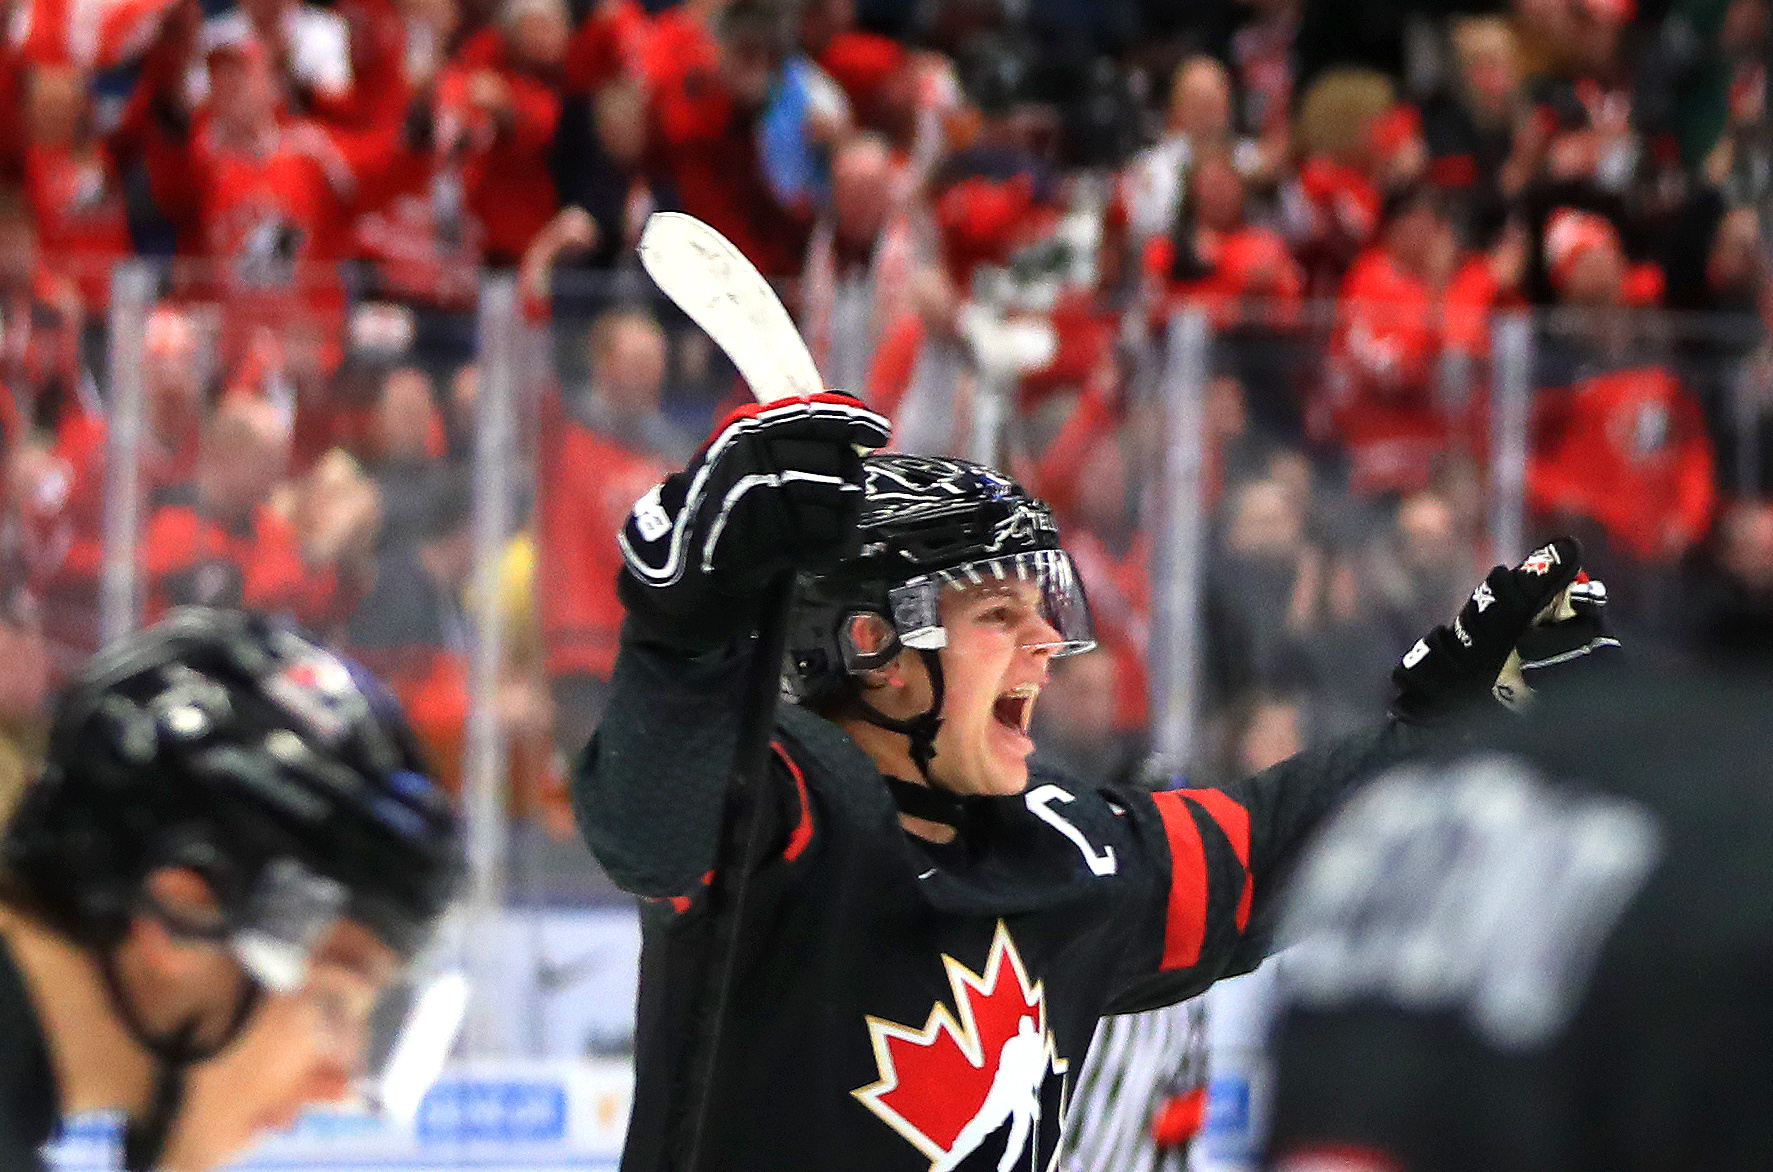 OSTRAVA, CZECH REPUBLIC - JANUARY 4, 2020: Canada's Connor McMichael celebrates scoring in the 2020 World Junior Ice Hockey Championship semifinal match against Finland at Ostravar Arena.